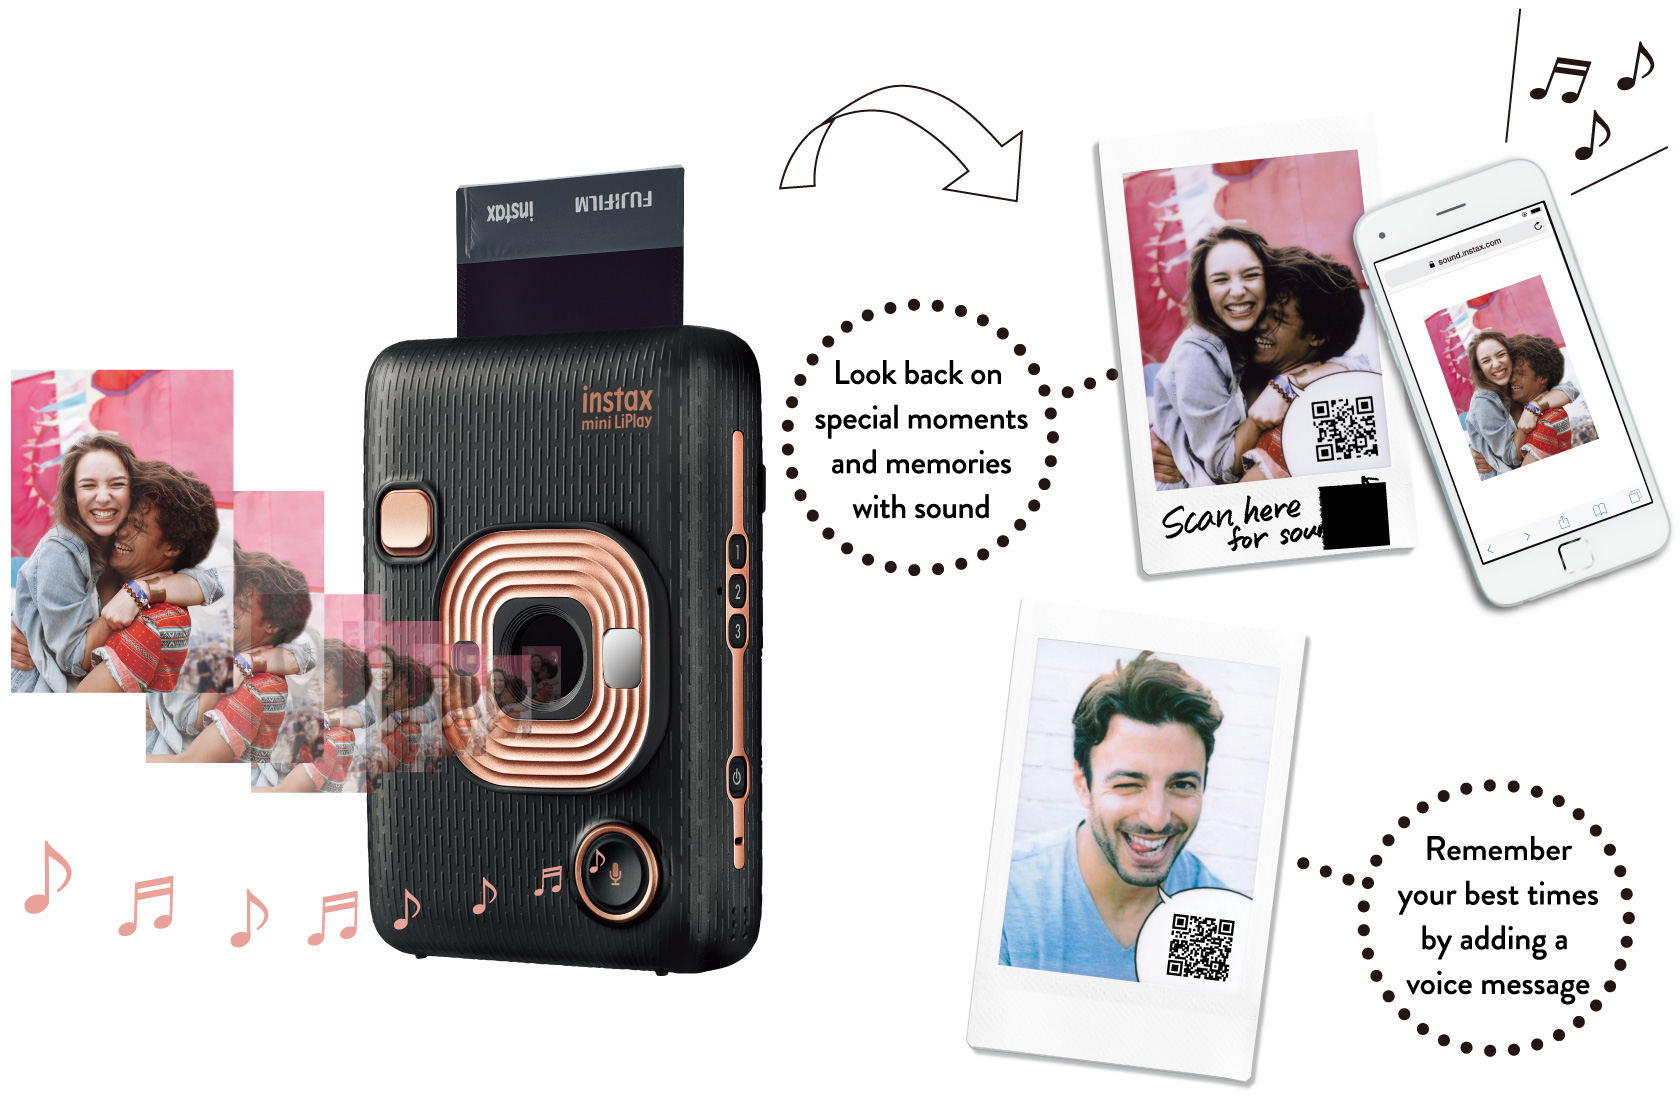 [image] Promotional graphic to Record sounds into a QR Code and add it to your photo feature of the with Instax Mini LiPlay in Elegant Black with sample photo prints, a mobile view and promotional text